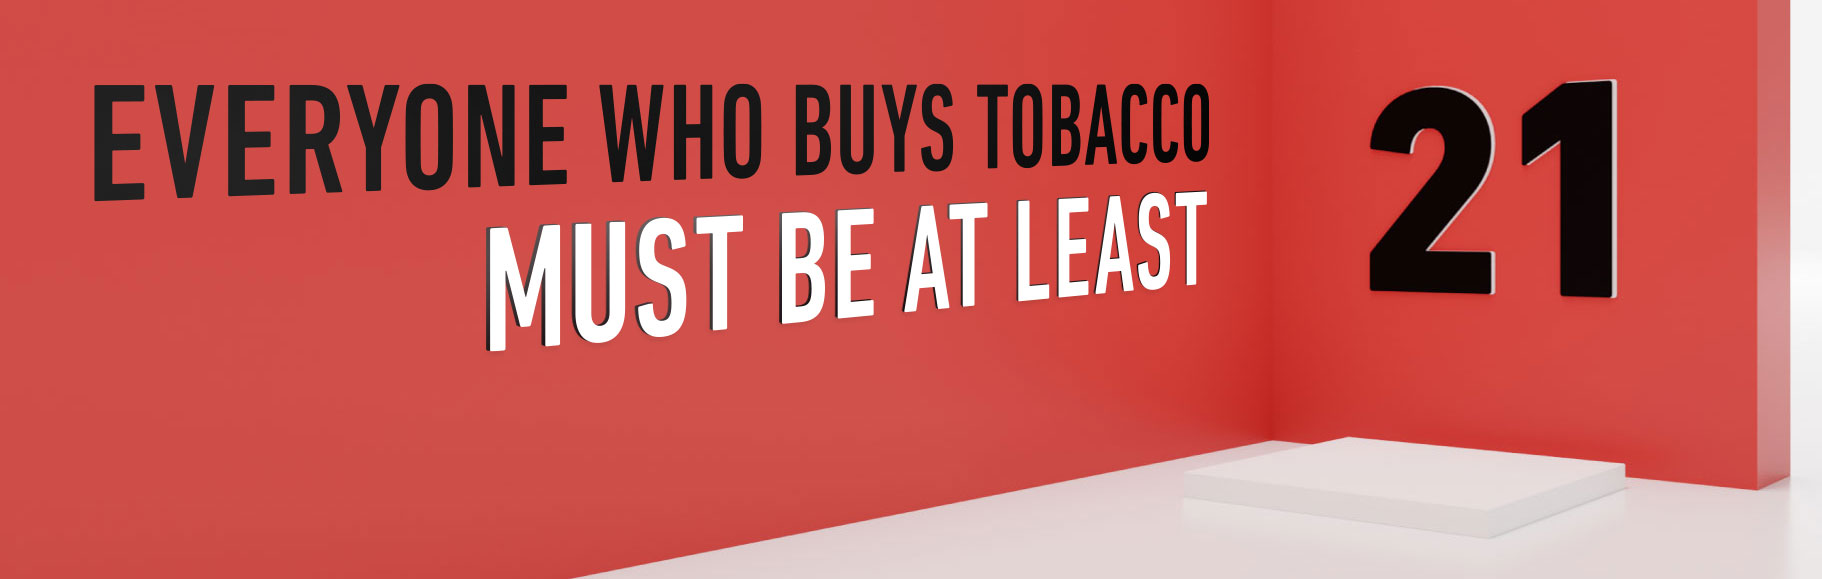 Everyone who buys tobacco must be at least 21 banner